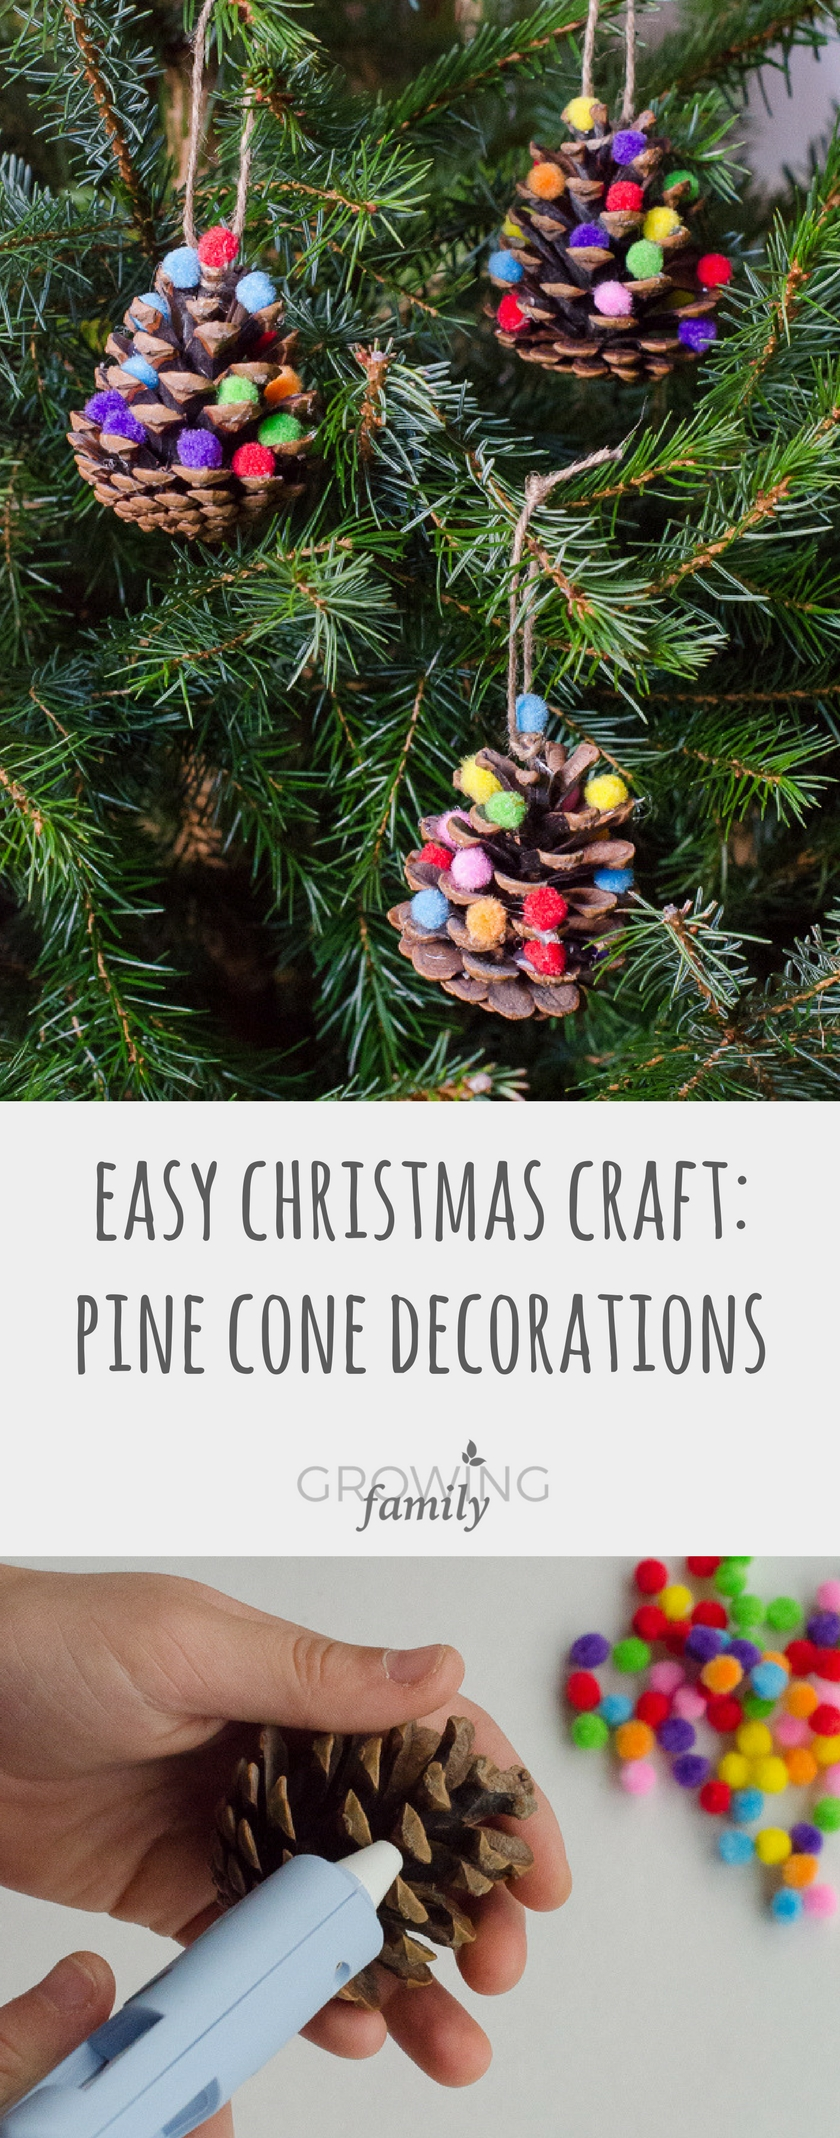 How To Make Homemade Christmas Decorations With Pine Cones And Pom Poms